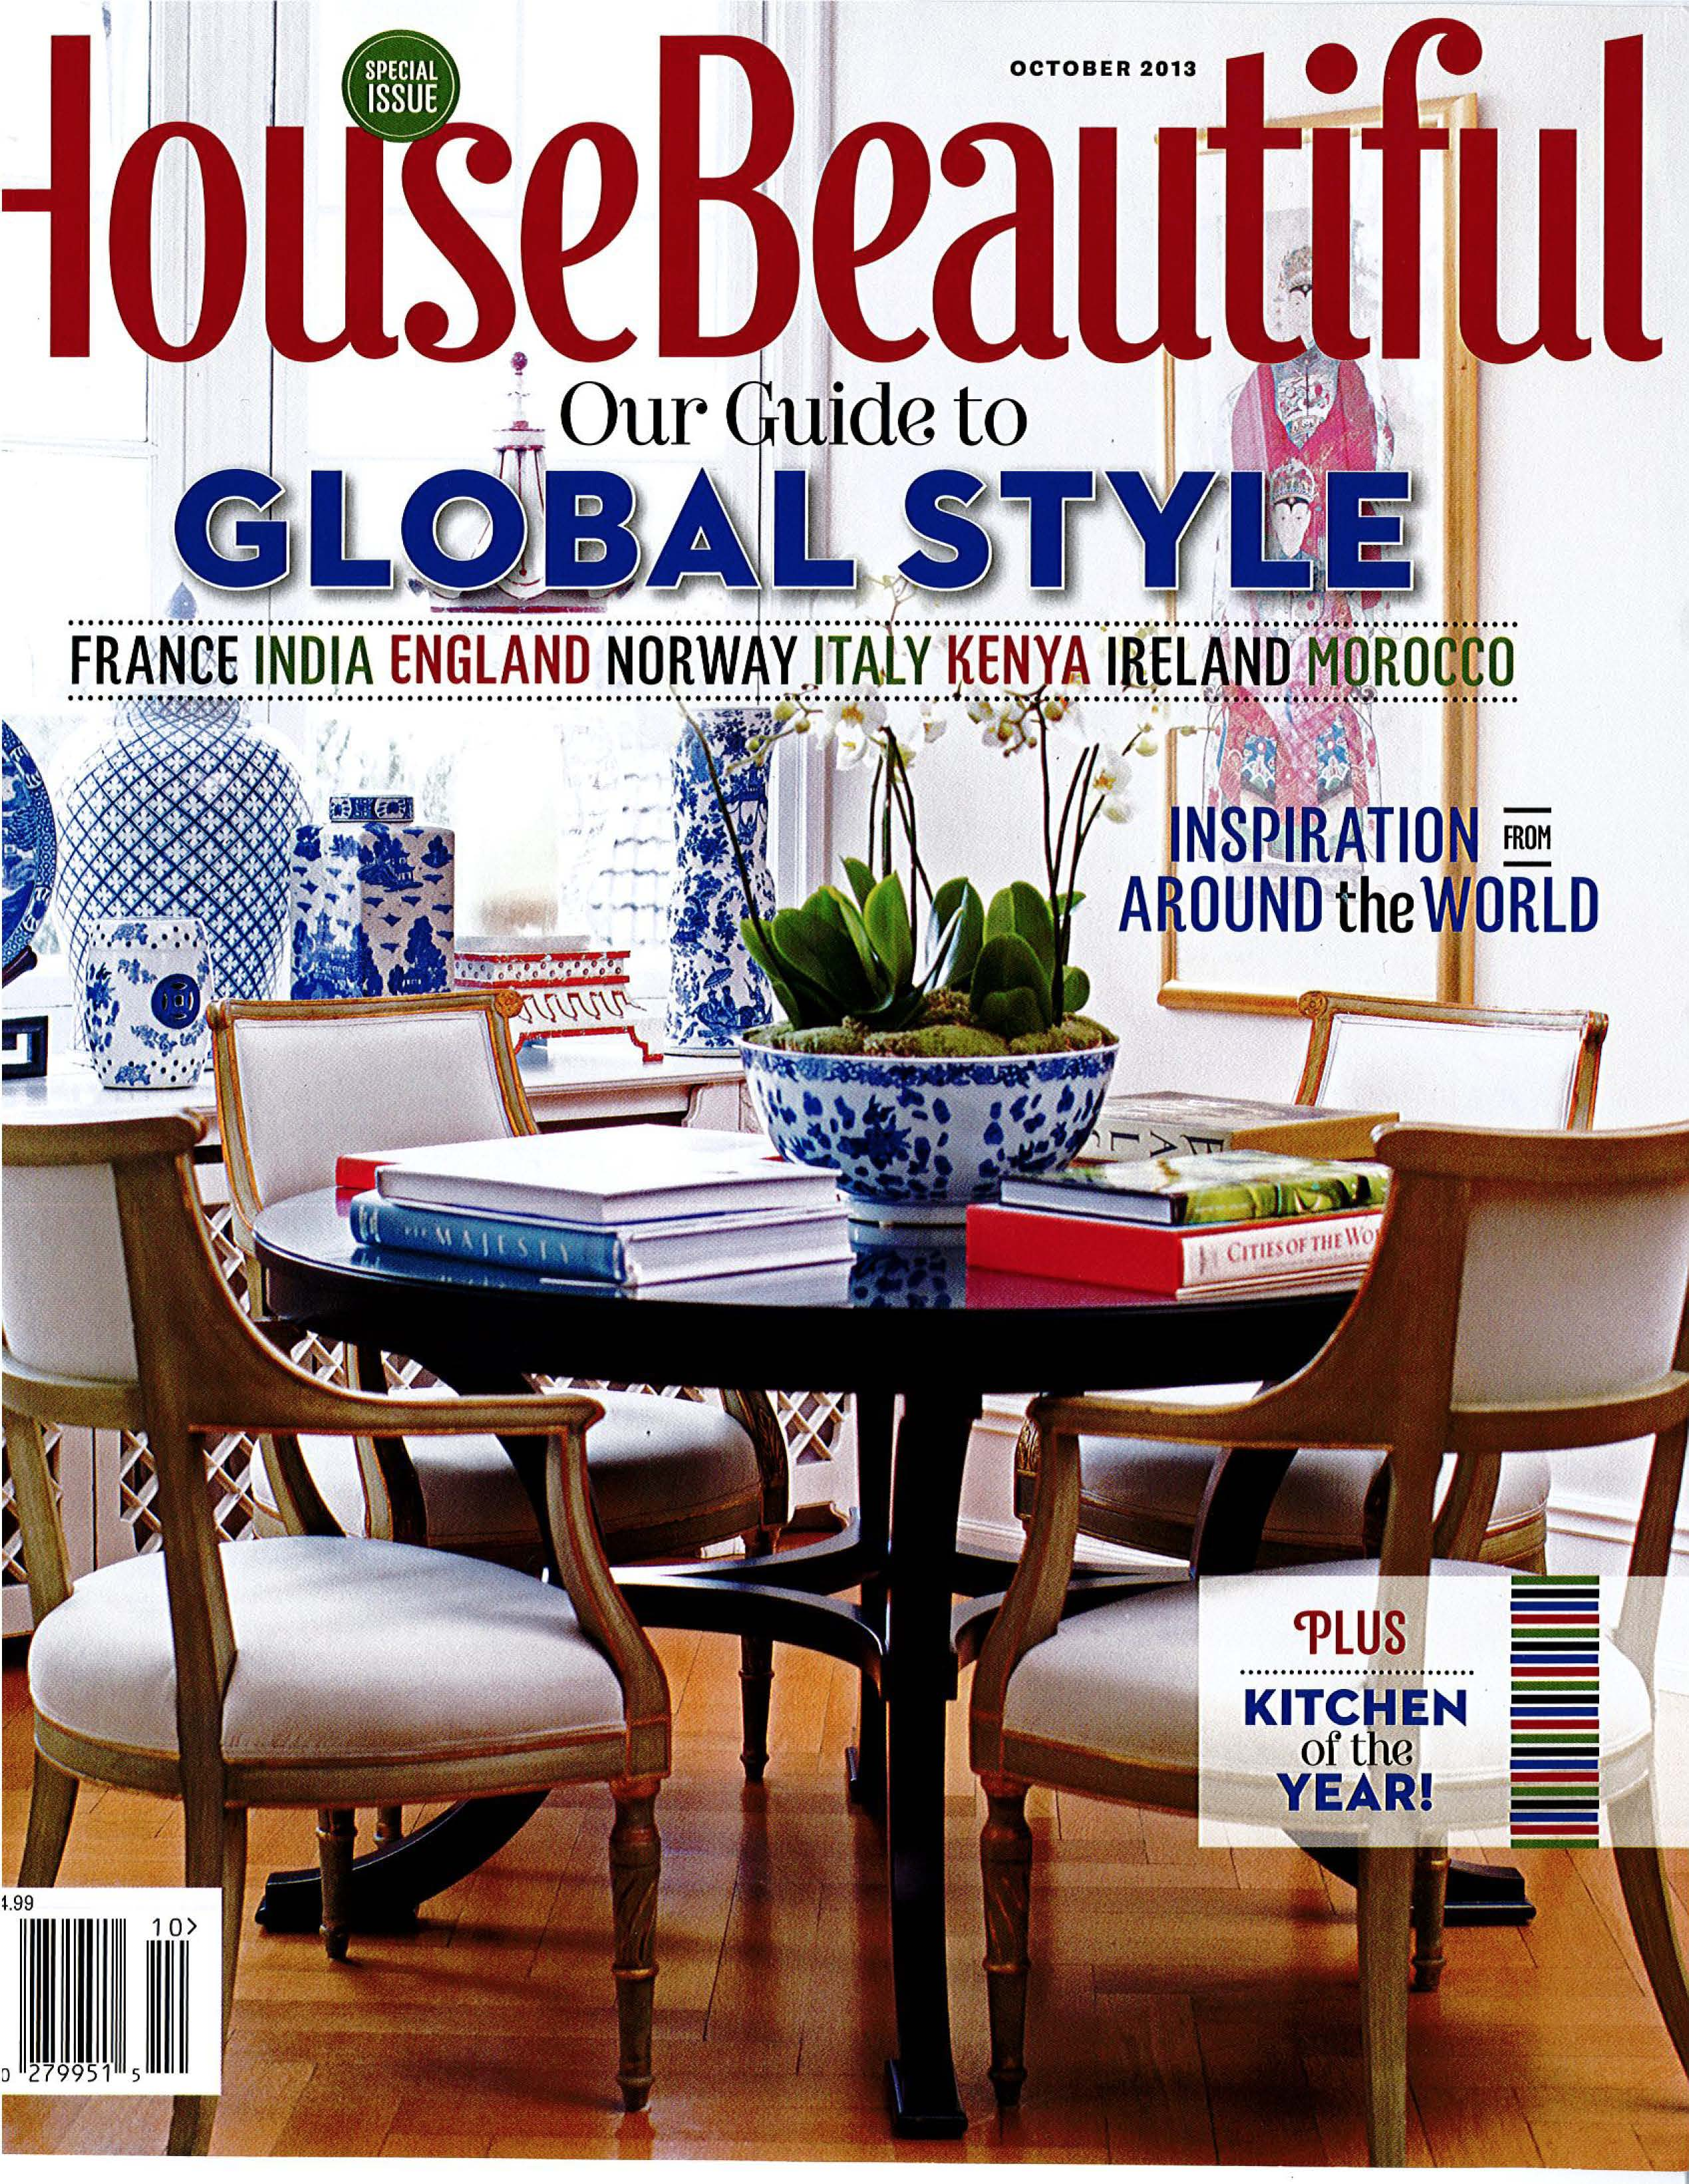 Housebeautiful_10-131